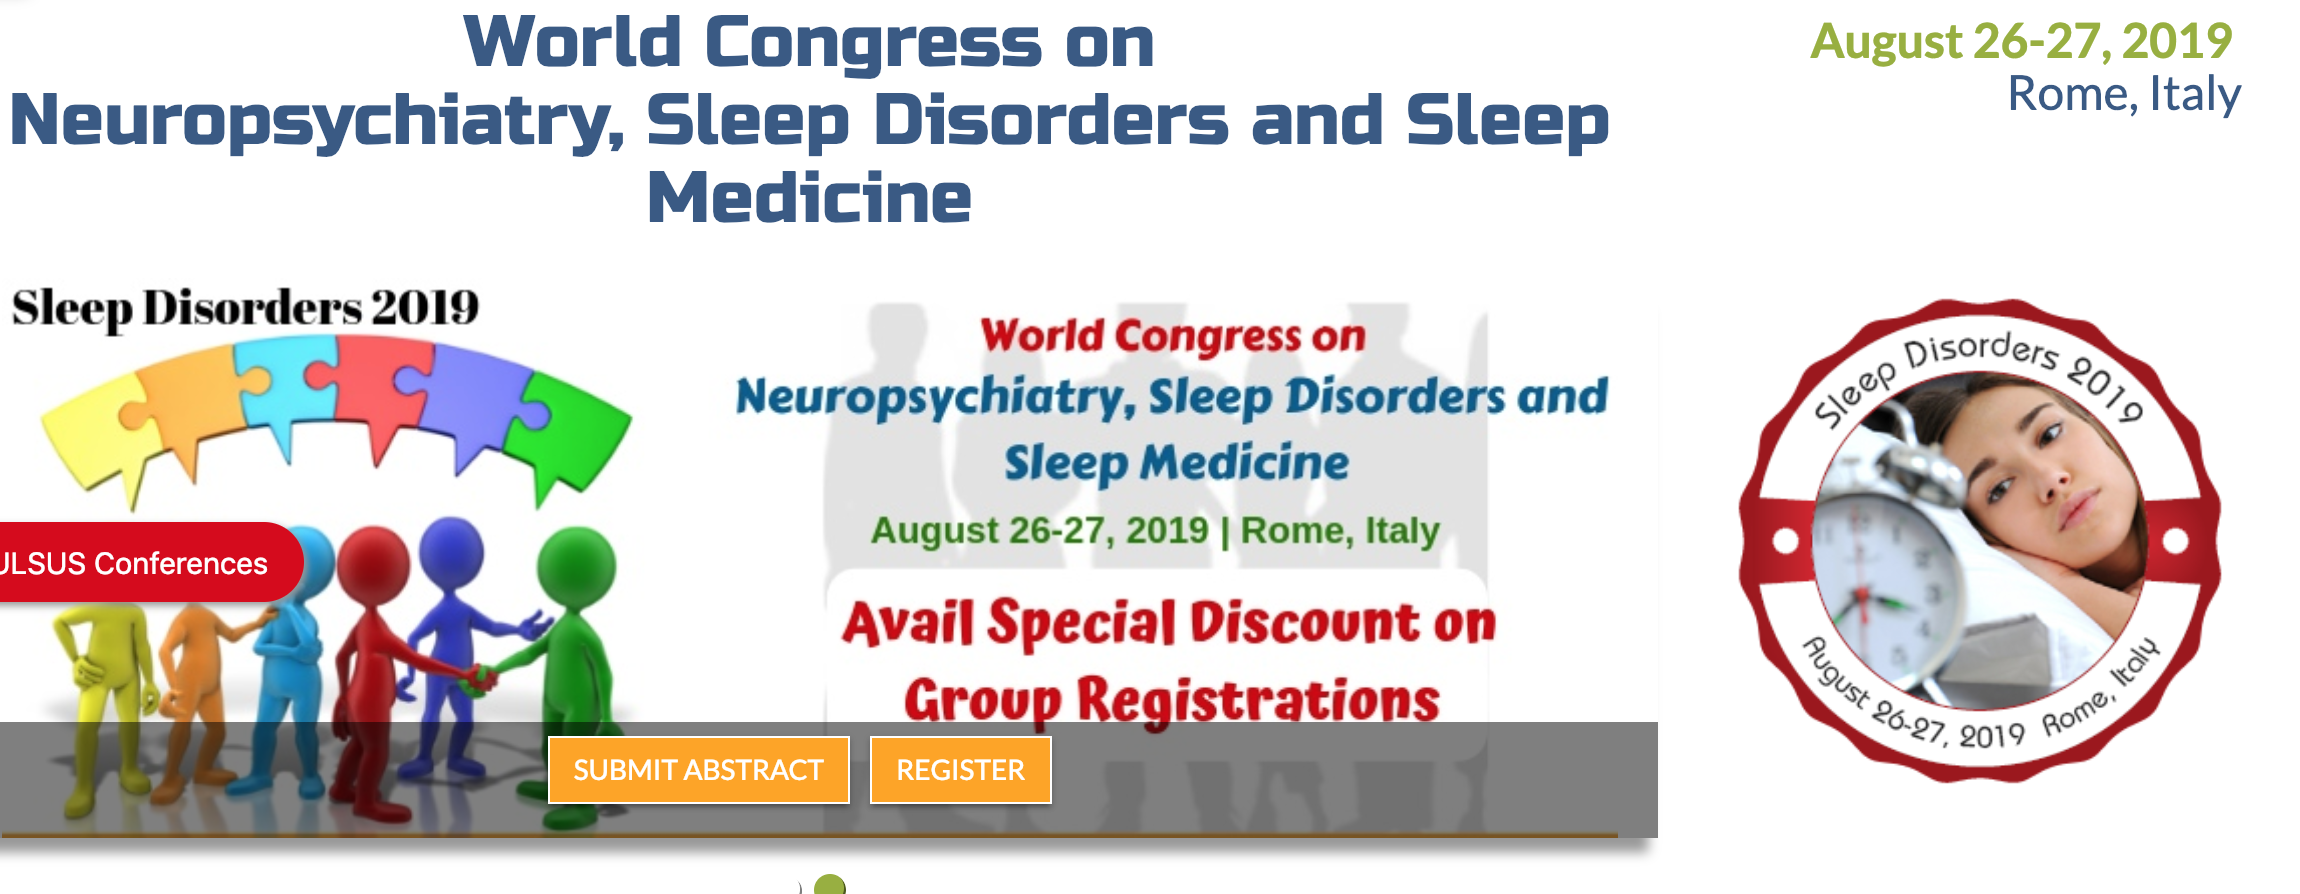 World Congress on Neuropsychiatry, Sleep Disorders and Sleep Medicine